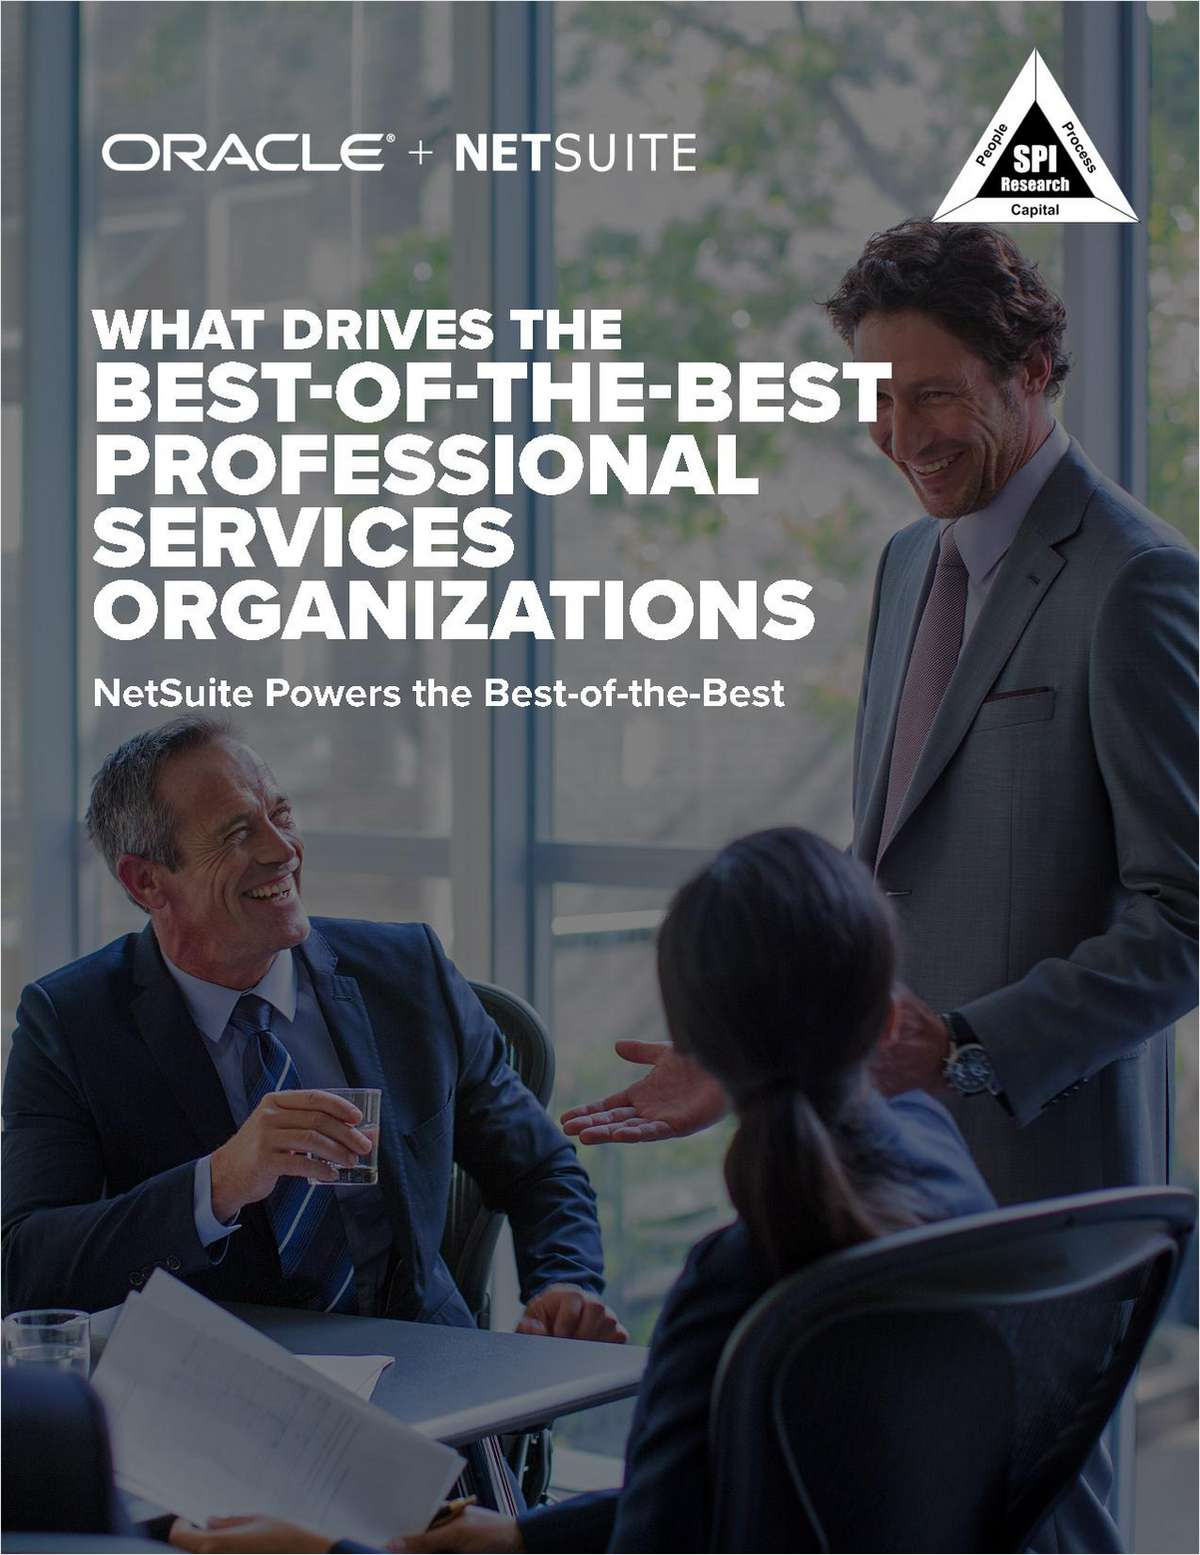 NetSuite Powers the Best-of-the-Best Services Organizations